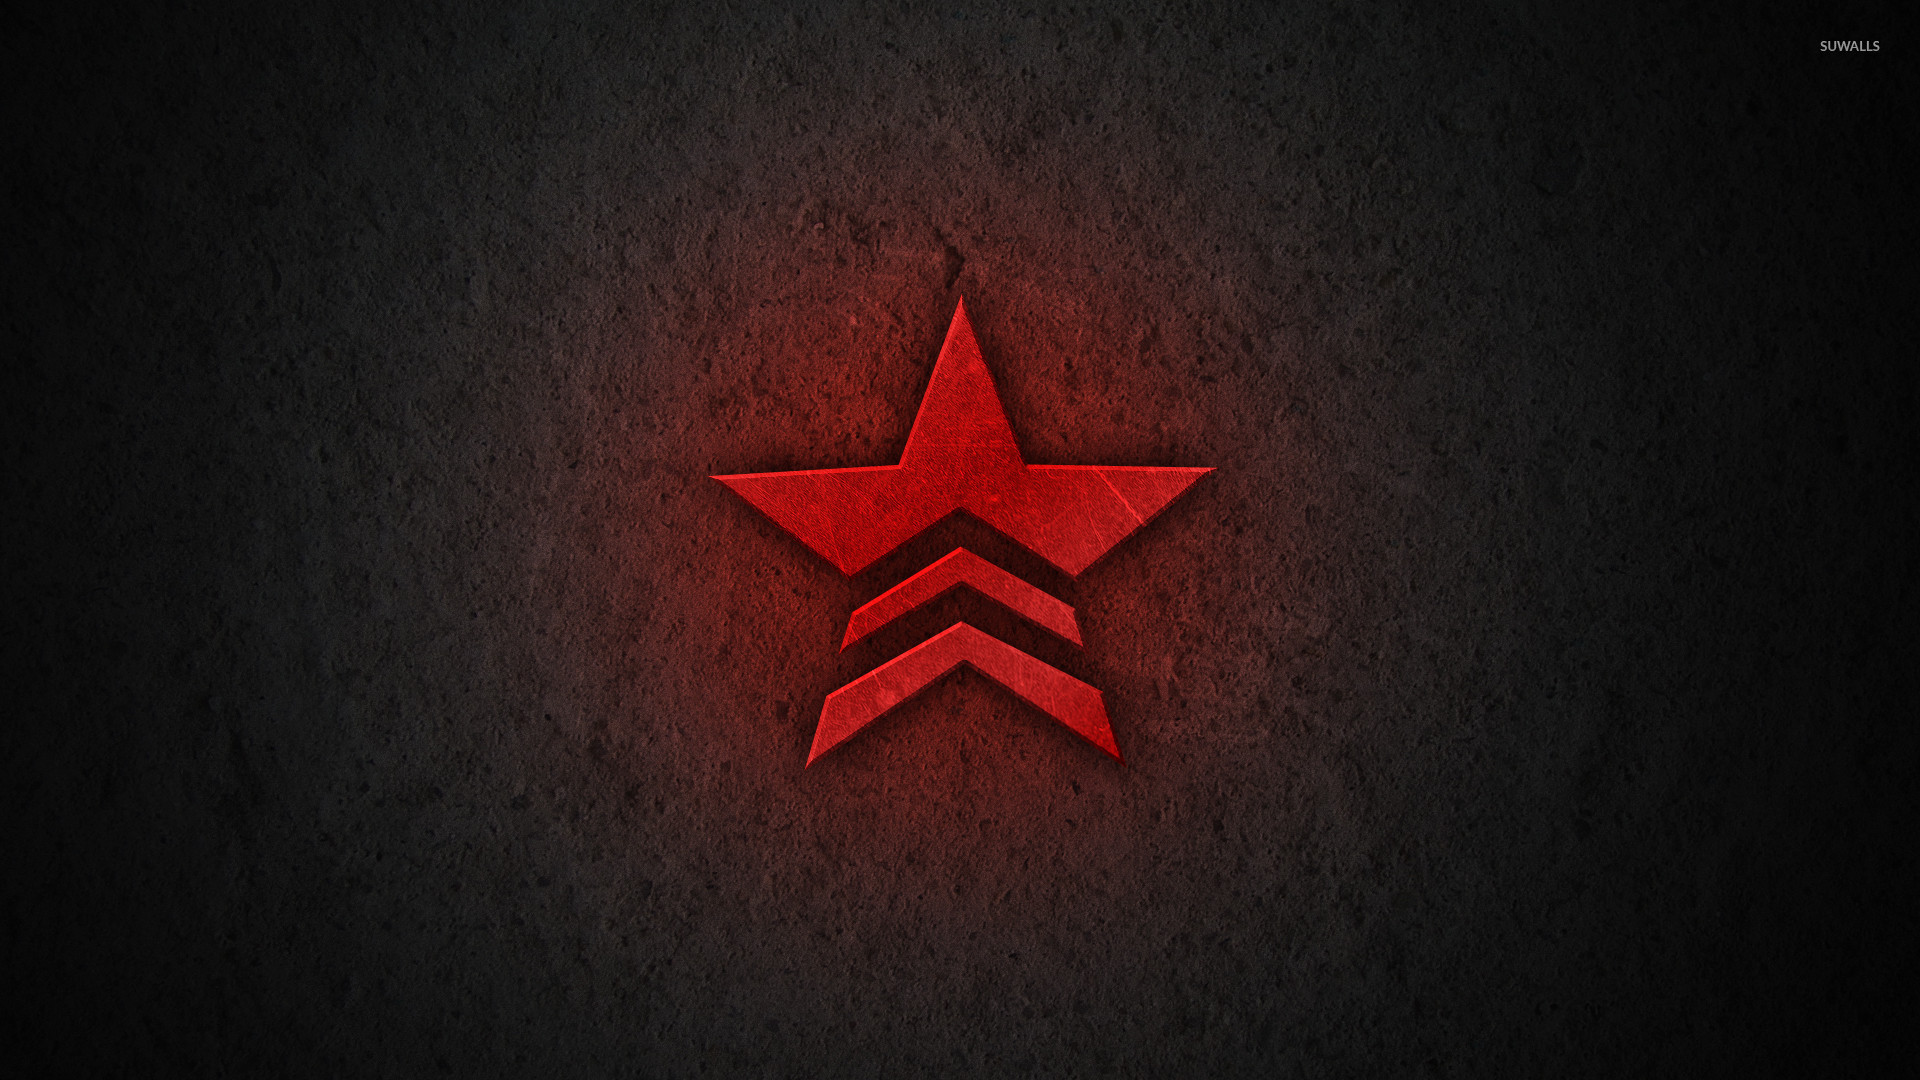 red star wallpaper 3d - photo #13